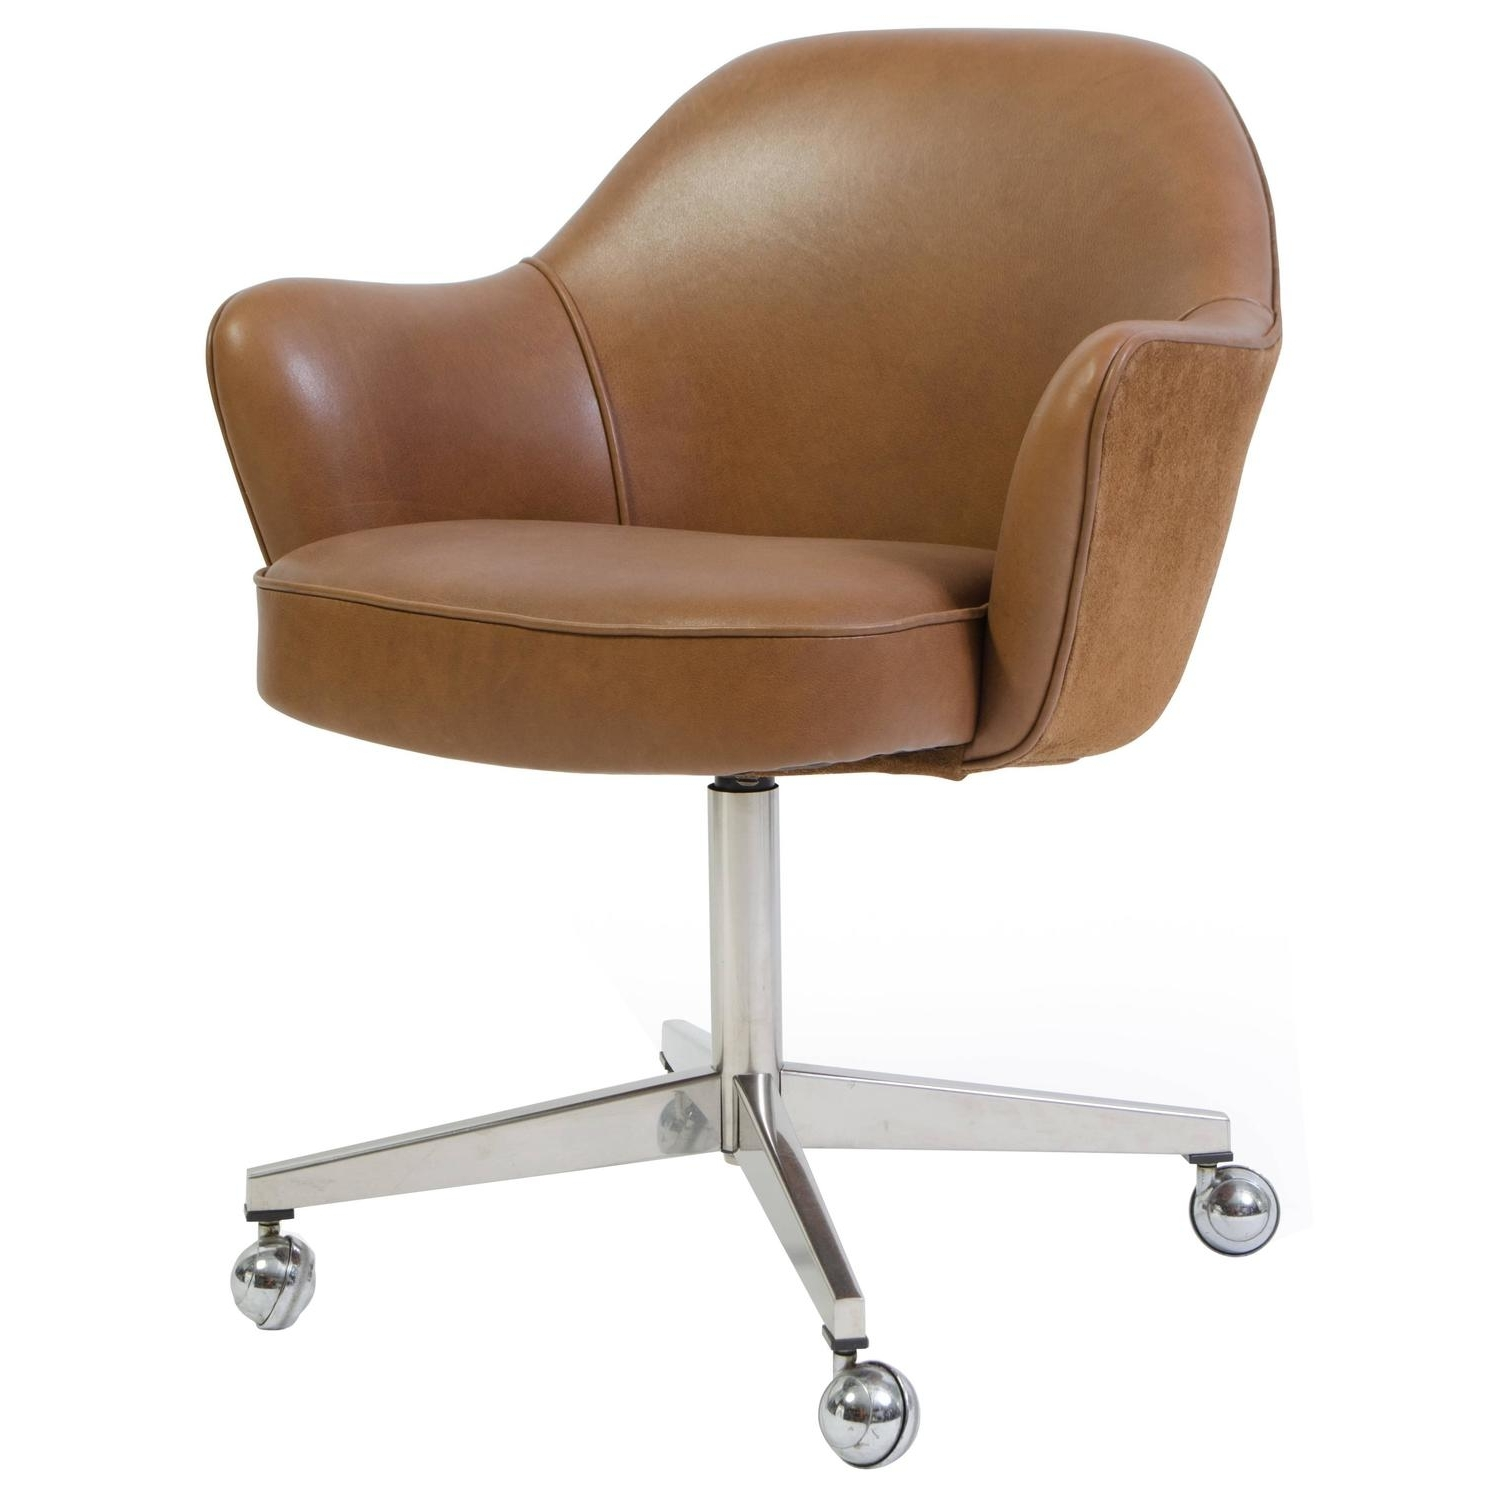 Well Known Verona Cream Executive Leather Office Chairs Regarding Chair : High Back Executive Leather Office Chair Verona Brown (View 2 of 20)